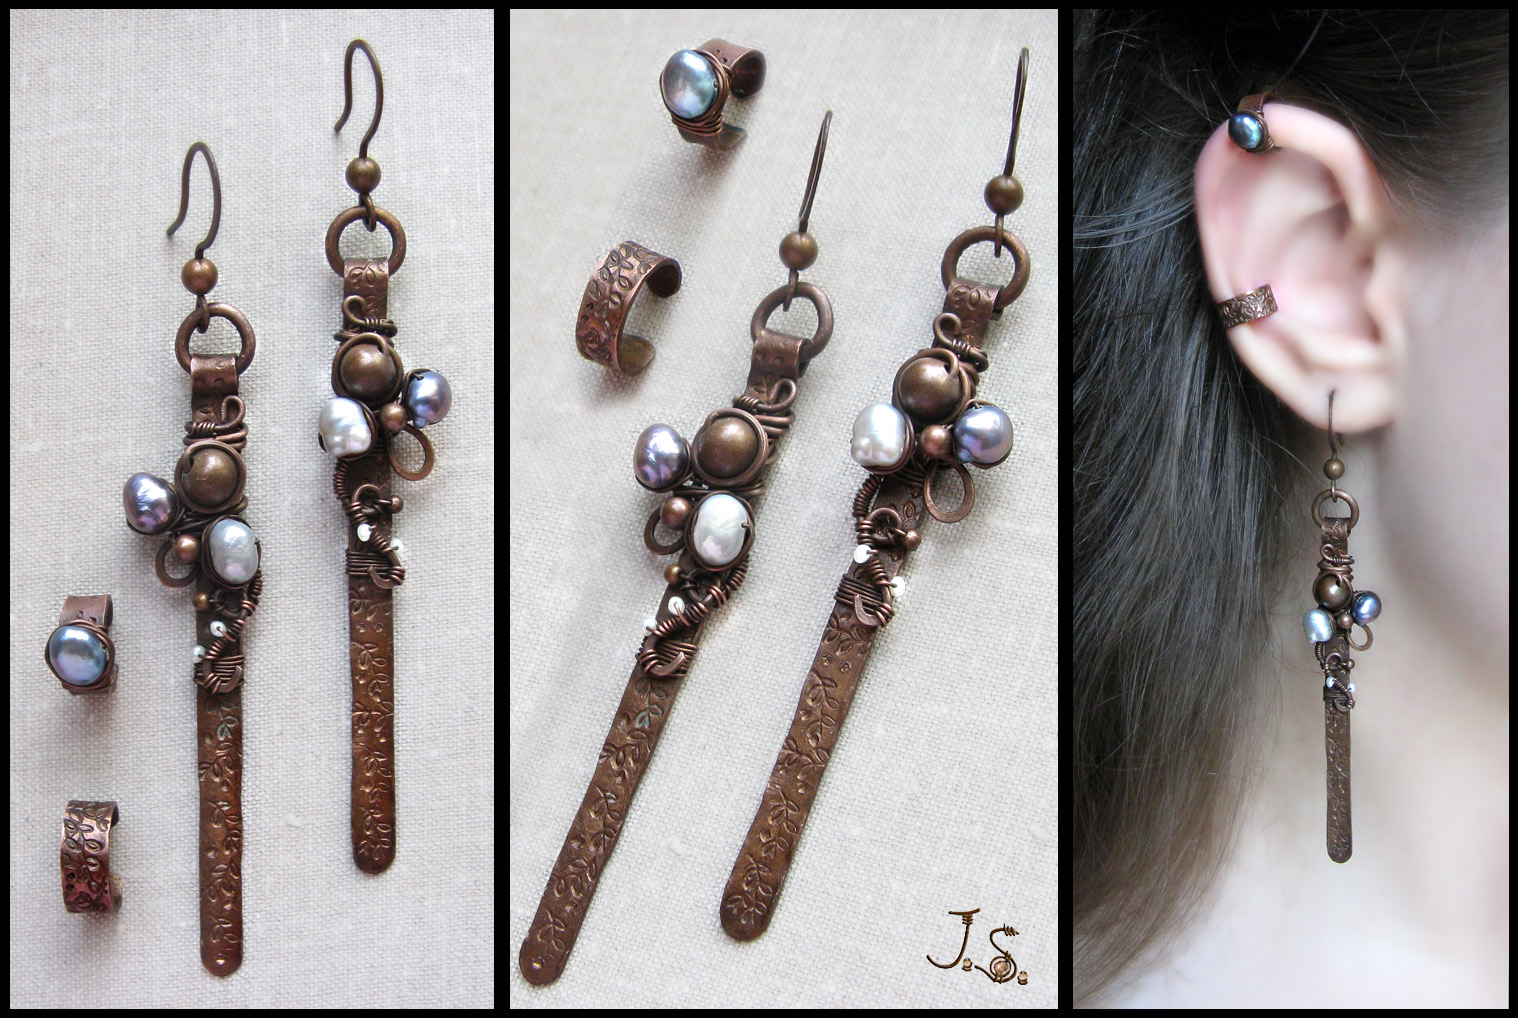 Earrings and small ear cuffs by JSjewelry